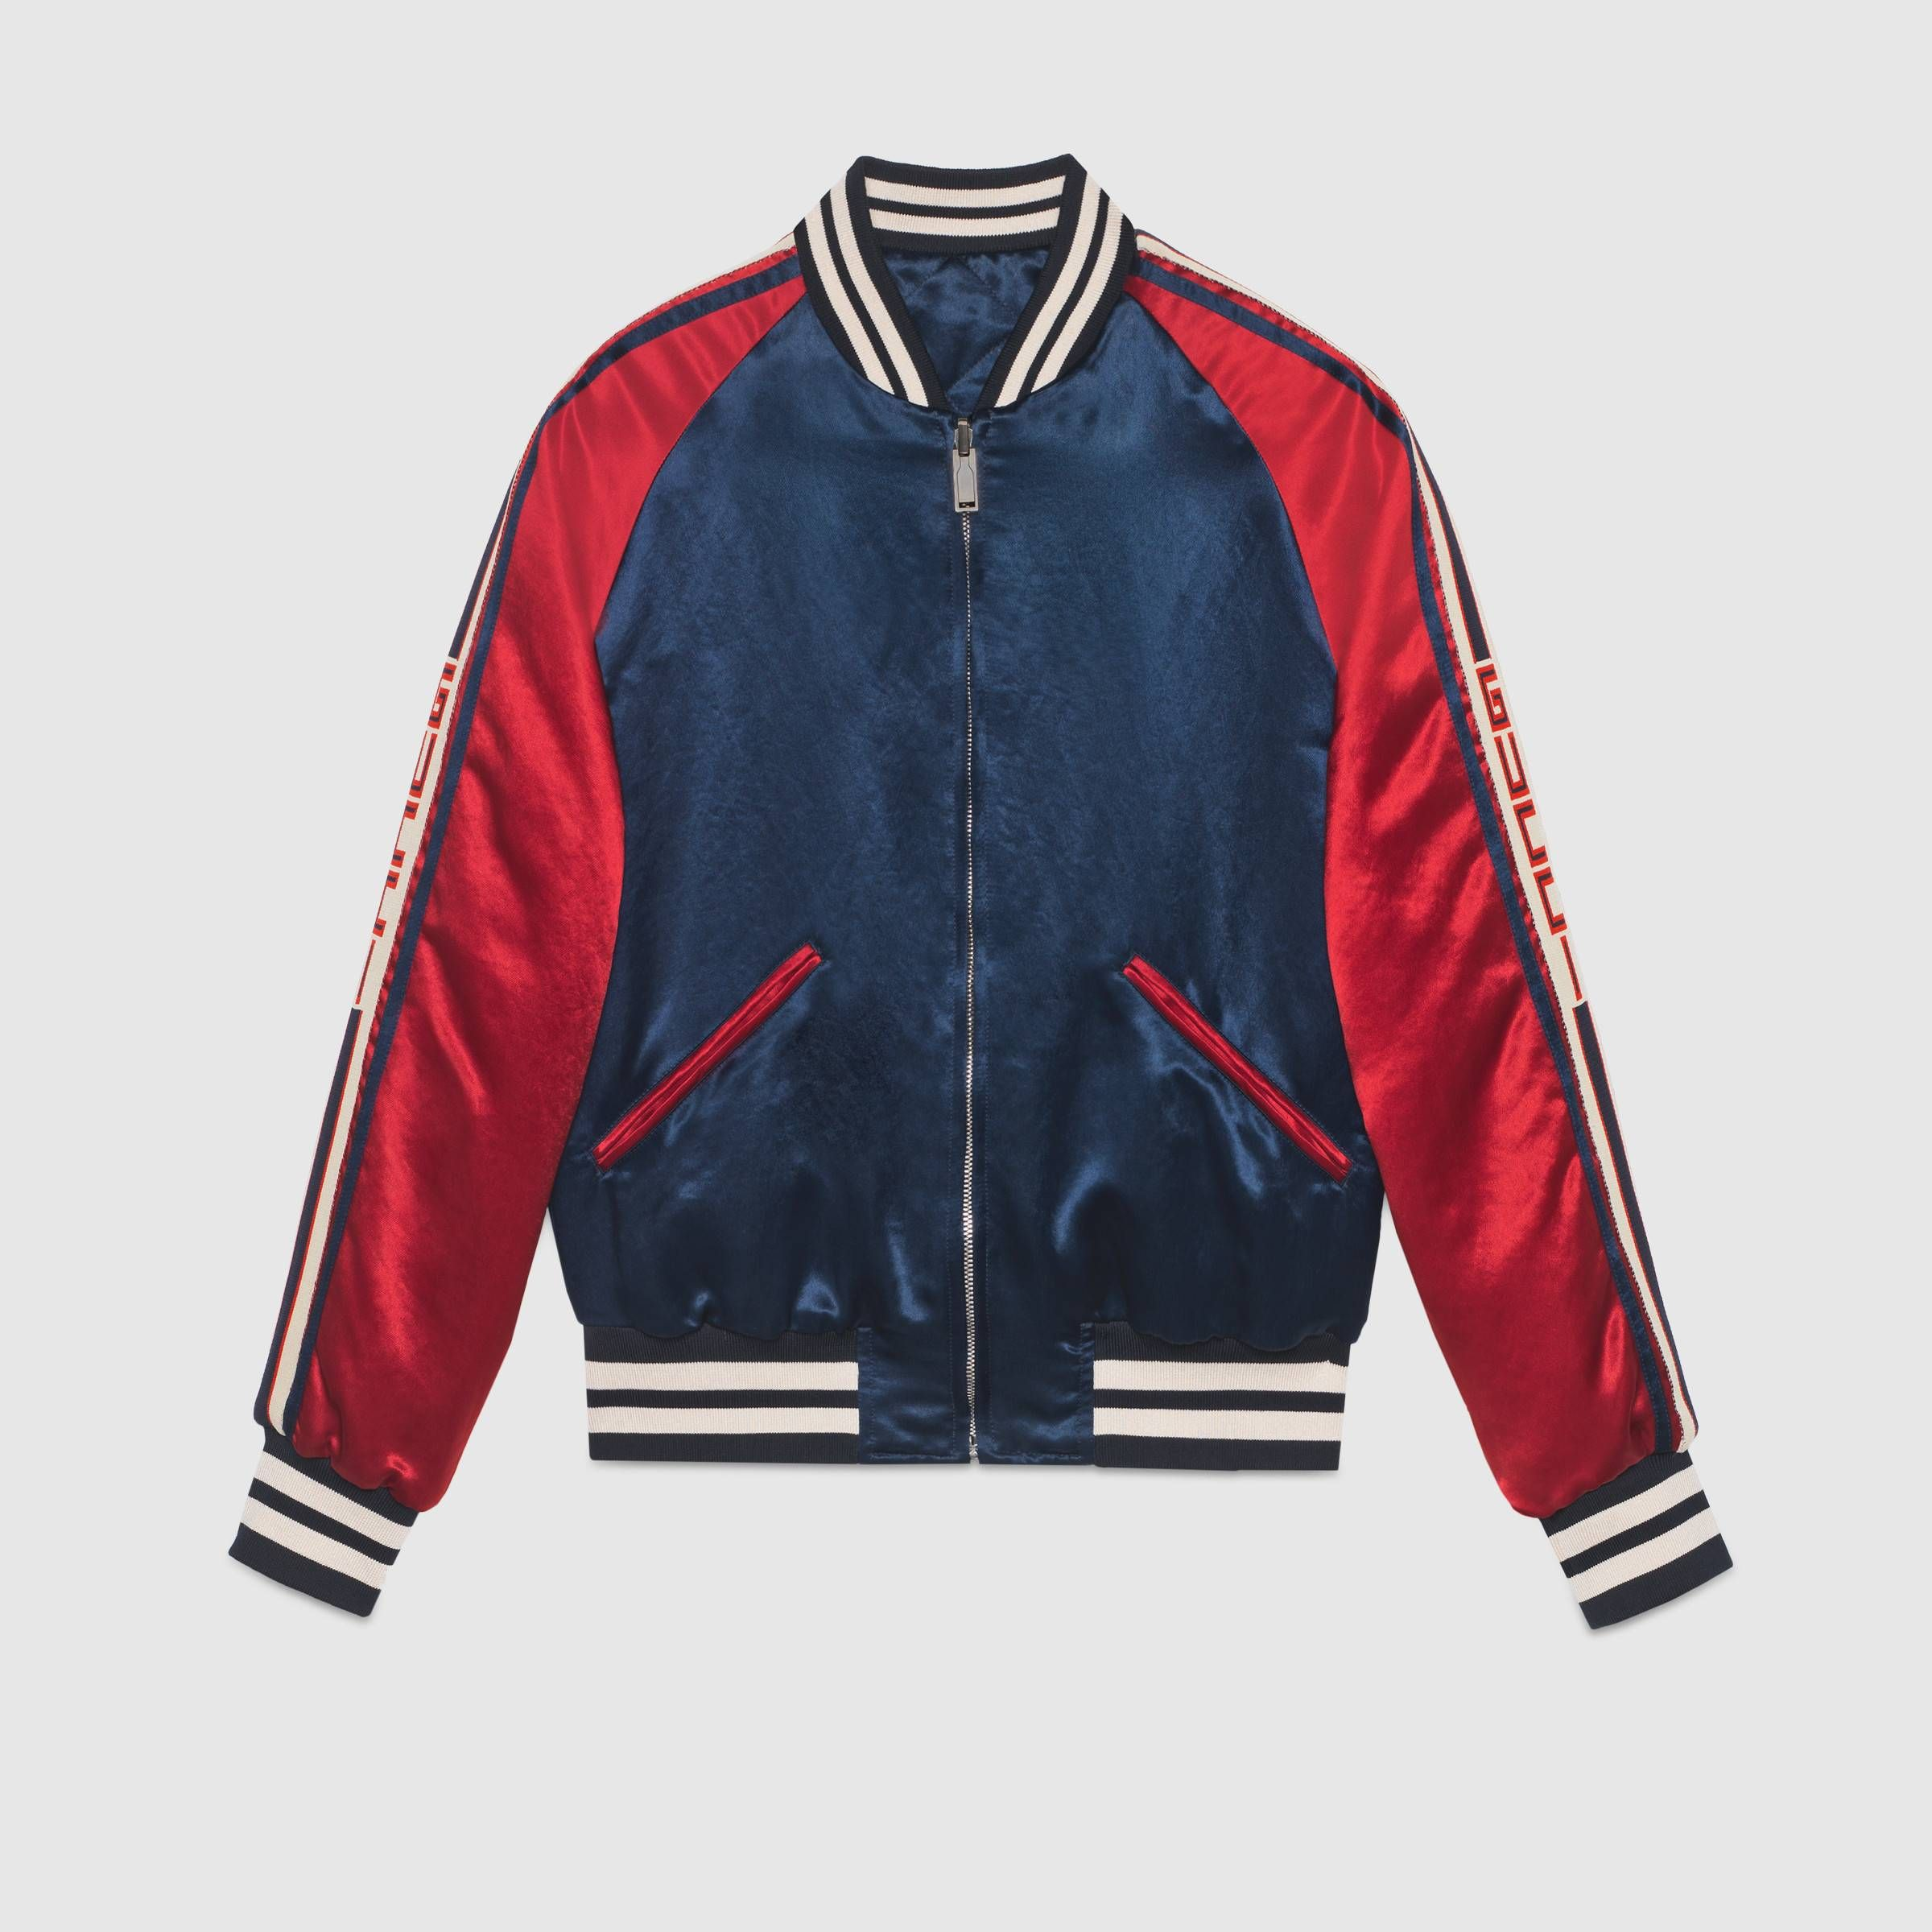 Gucci Stripe Reversible Acetate Bomber Gucci Men S Leather Casual Jackets 501100z791a4586 Quilted Jacket Men Gucci Jacket Mens Jackets [ 2400 x 2400 Pixel ]